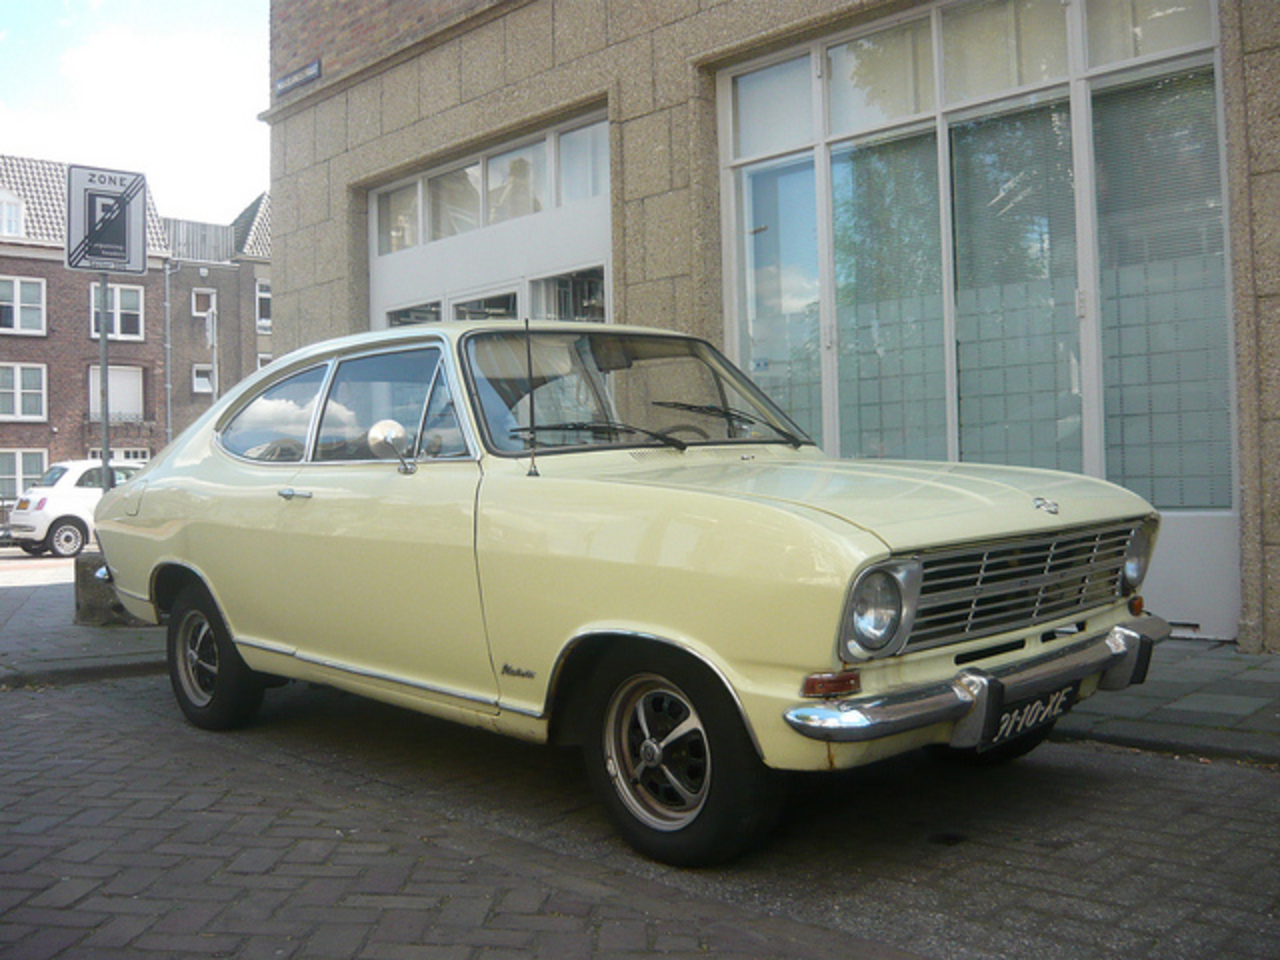 1973 Opel Kadett 12 Coupe automatic | Flickr - Photo Sharing!